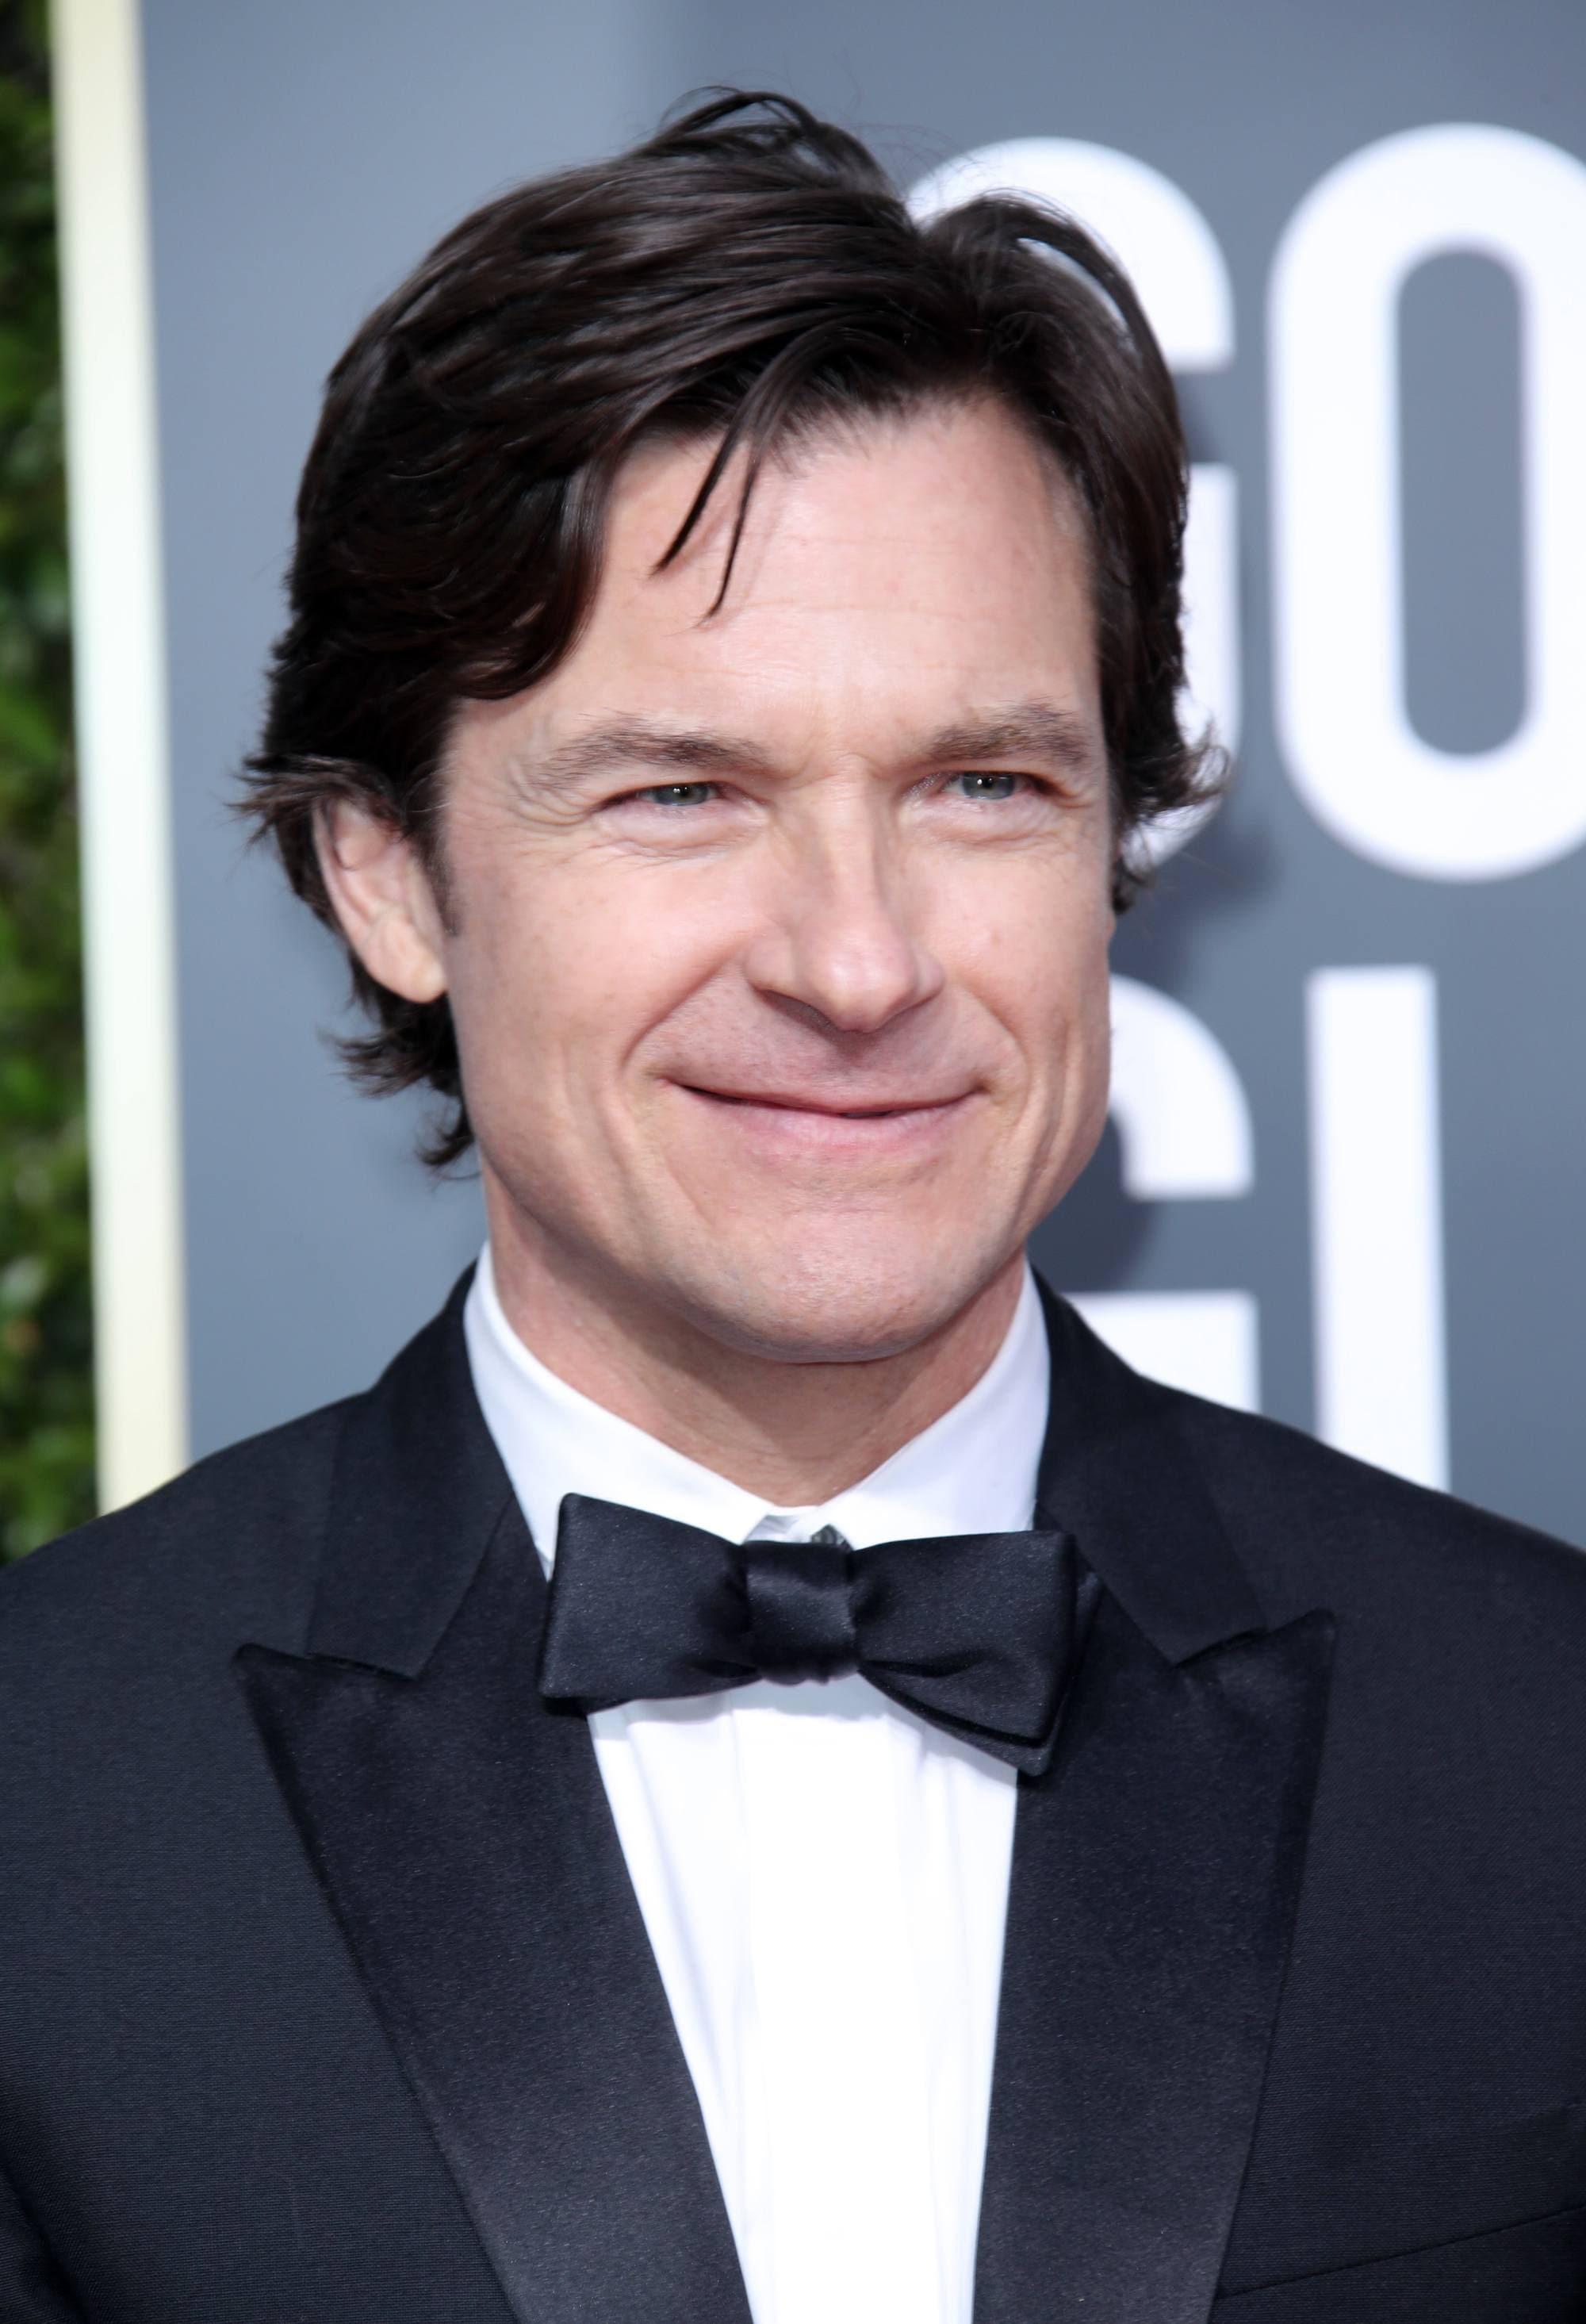 Golden Globes 2019: Close-up headshot of Jason Bateman with dark bro flow hair, wearing a tux and bow tie